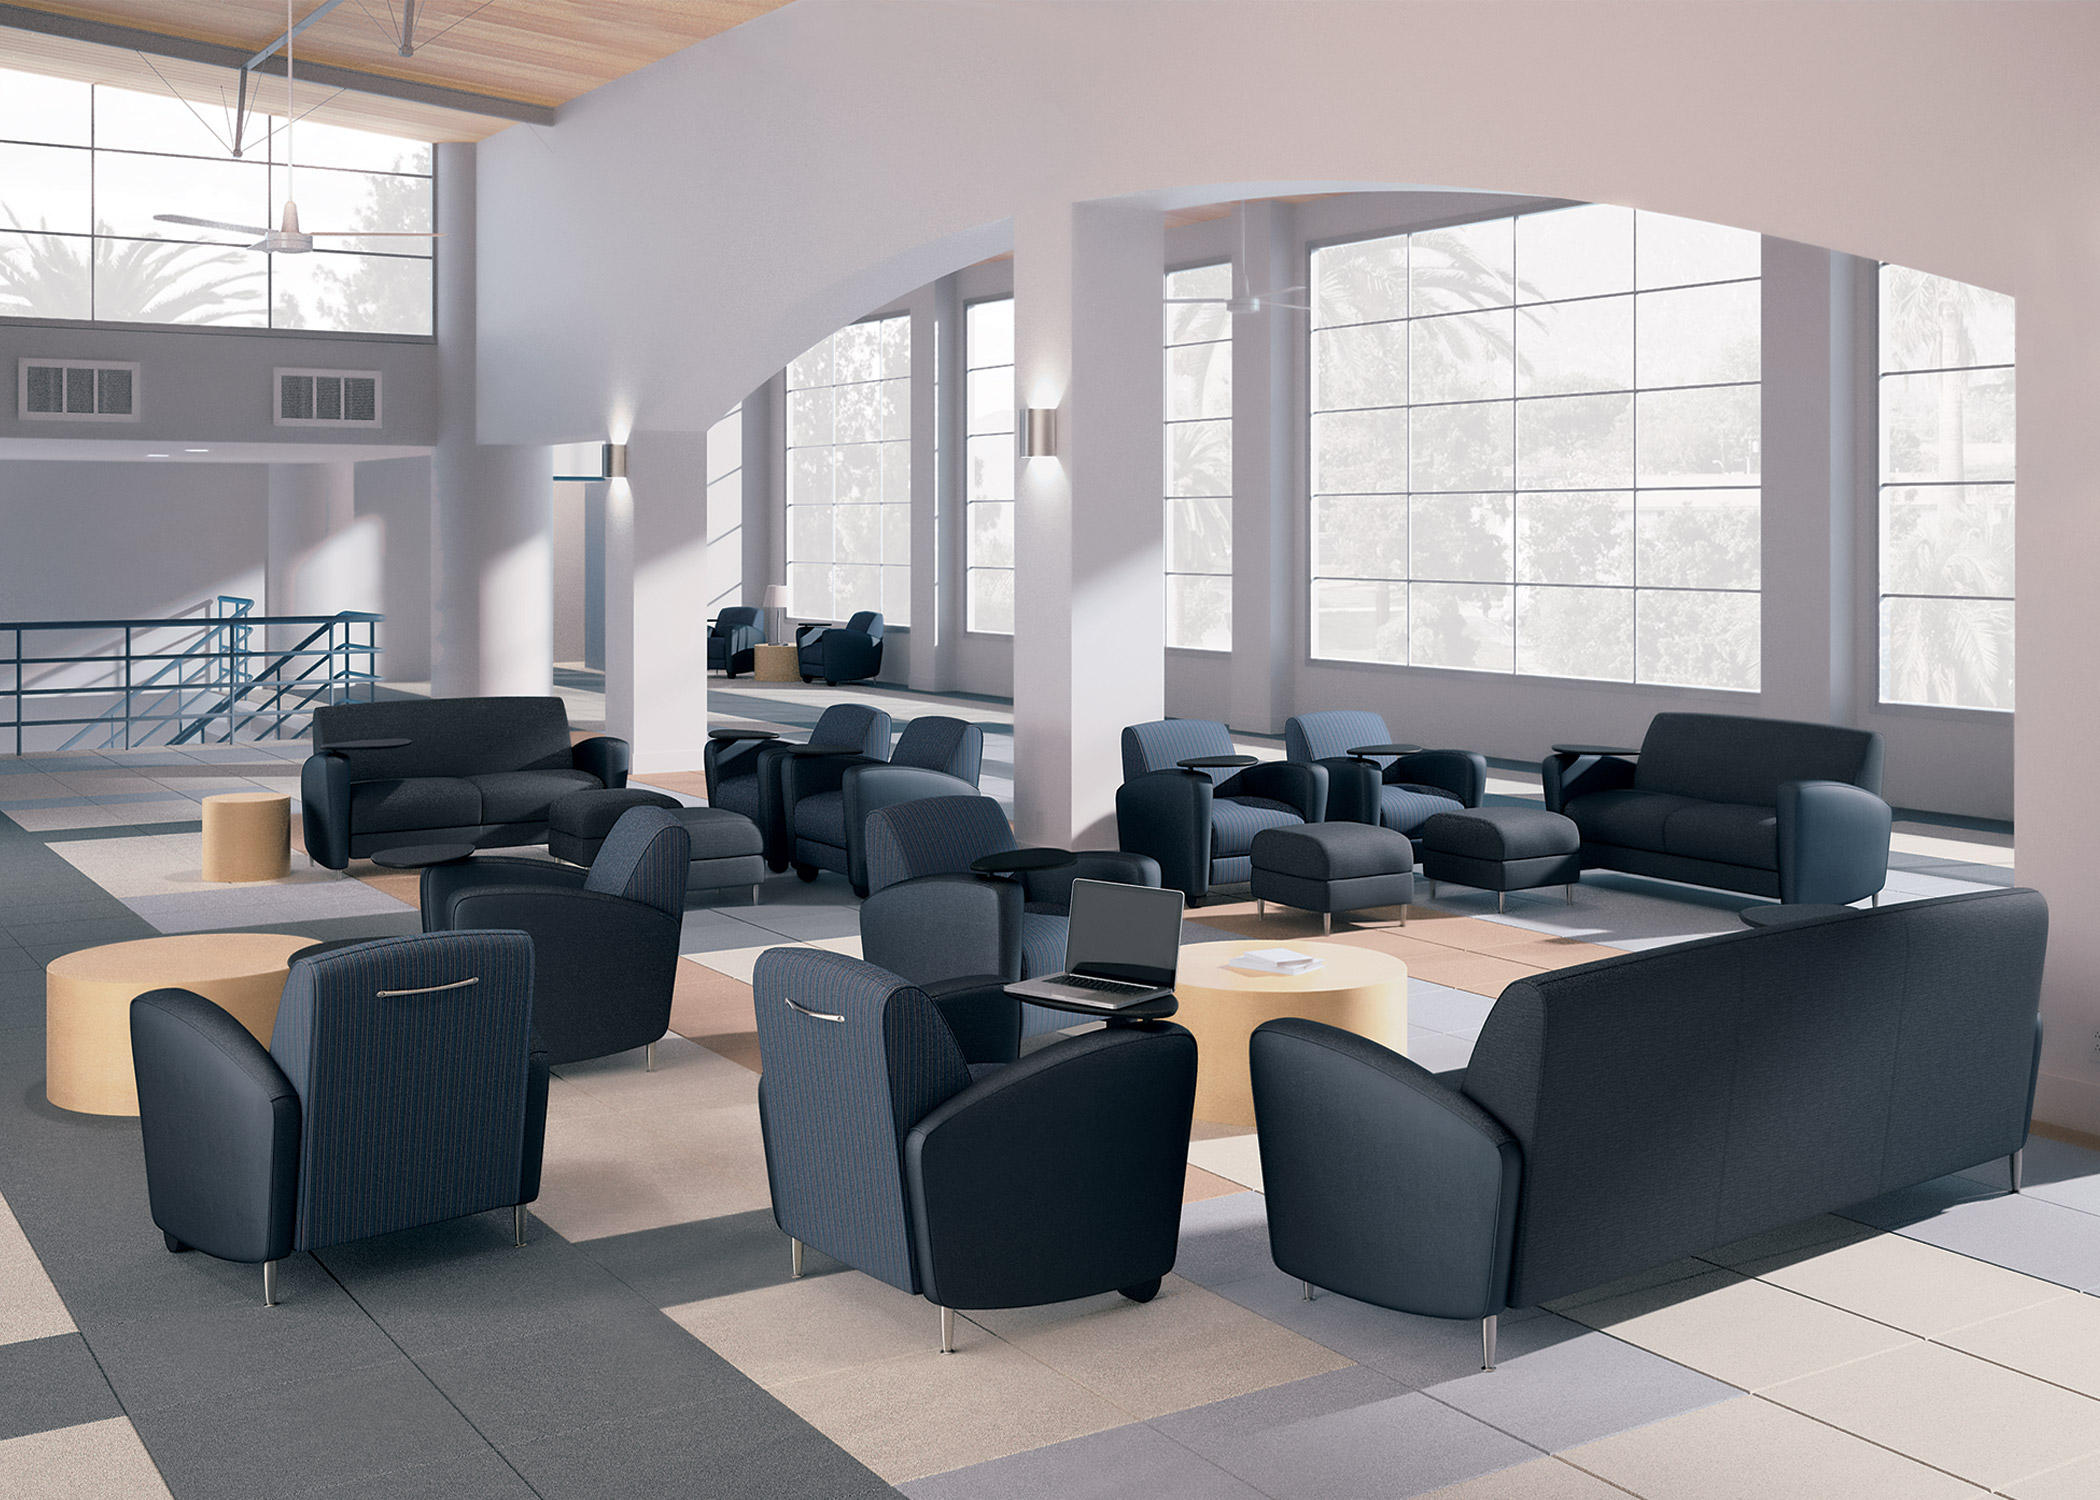 Reno 2 Seat Bench Waiting Area Benches From National